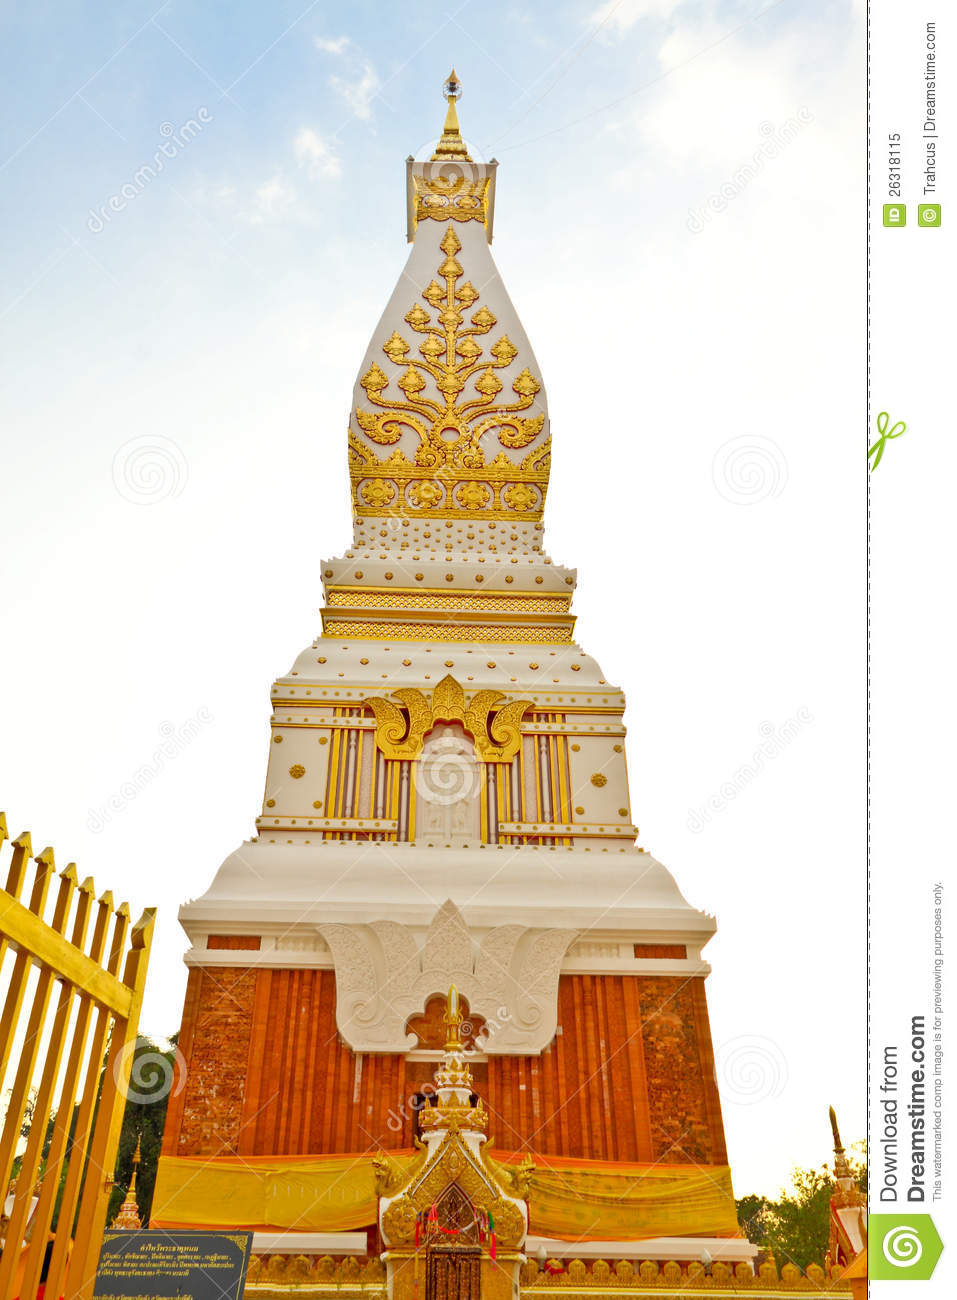 nakorn panom buddhist singles Download nakornpanom images and photos over 22 nakornpanom pictures to choose from, with no signup needed download in under 30 seconds.